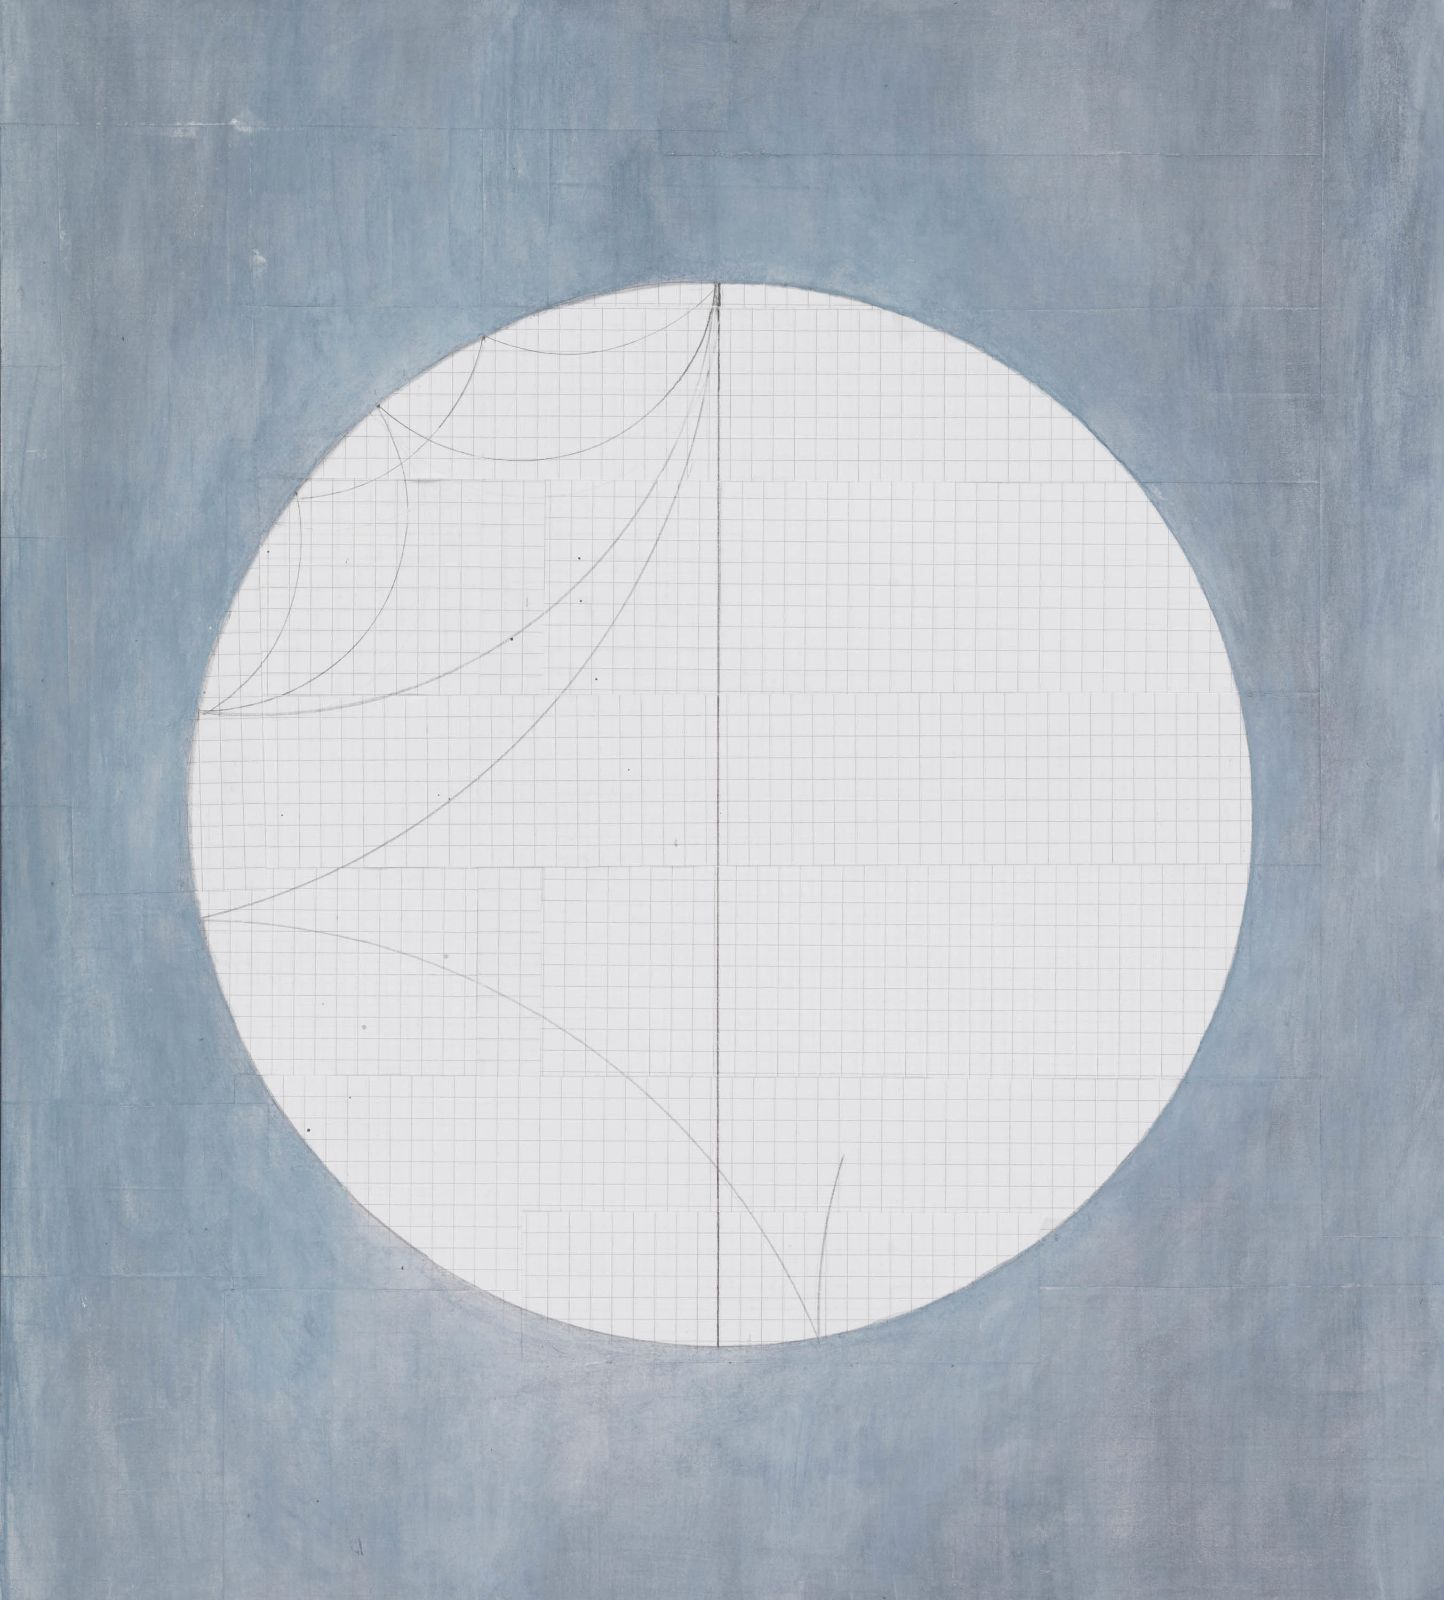 Solar Oscillations, 2016, acrylic and pencil on paper, 37 x 34 cm